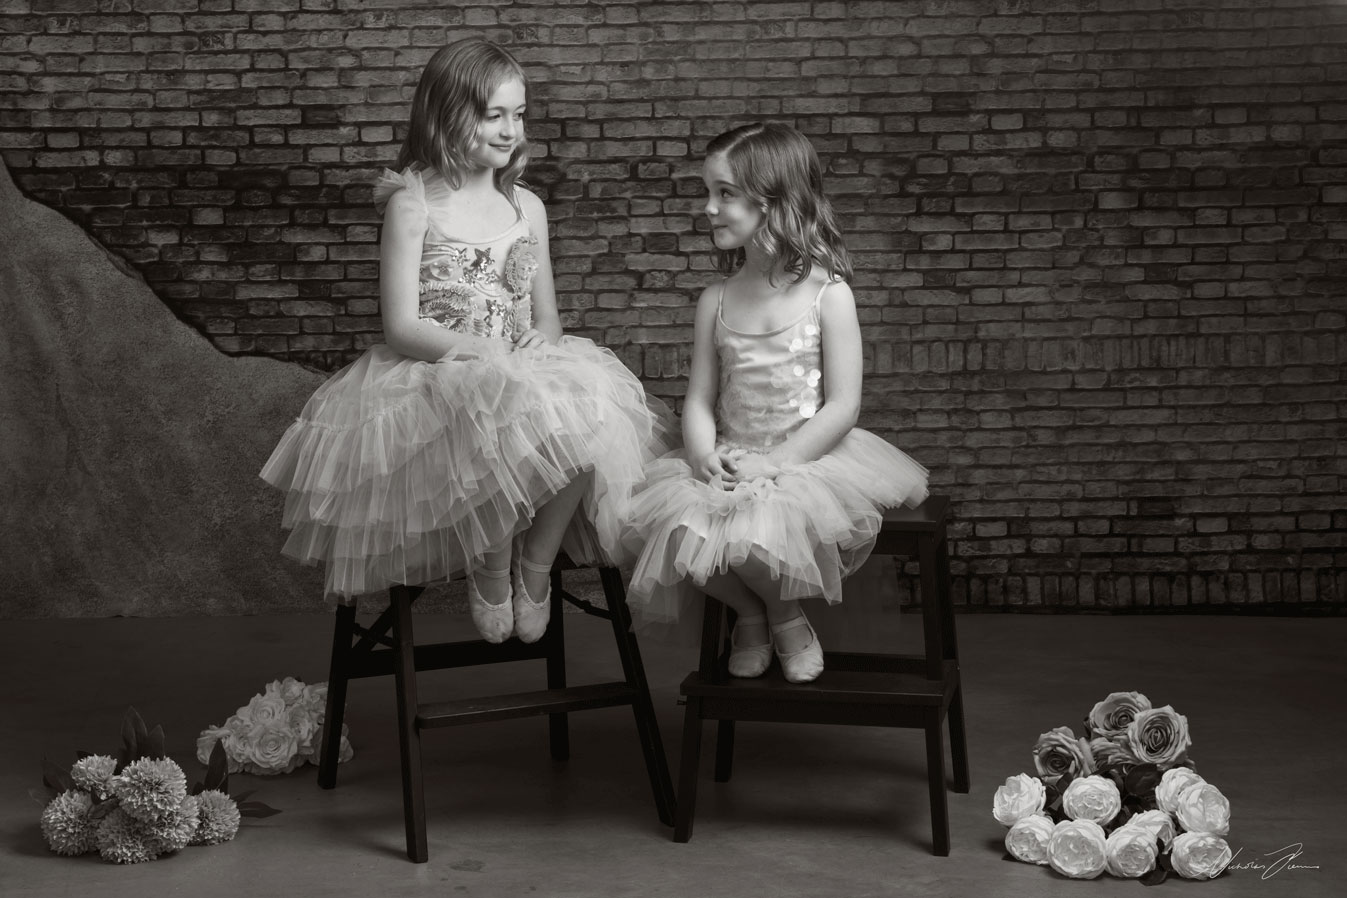 Black and white portrait of little ballerinas Lior and Noa, sitting on step stools.